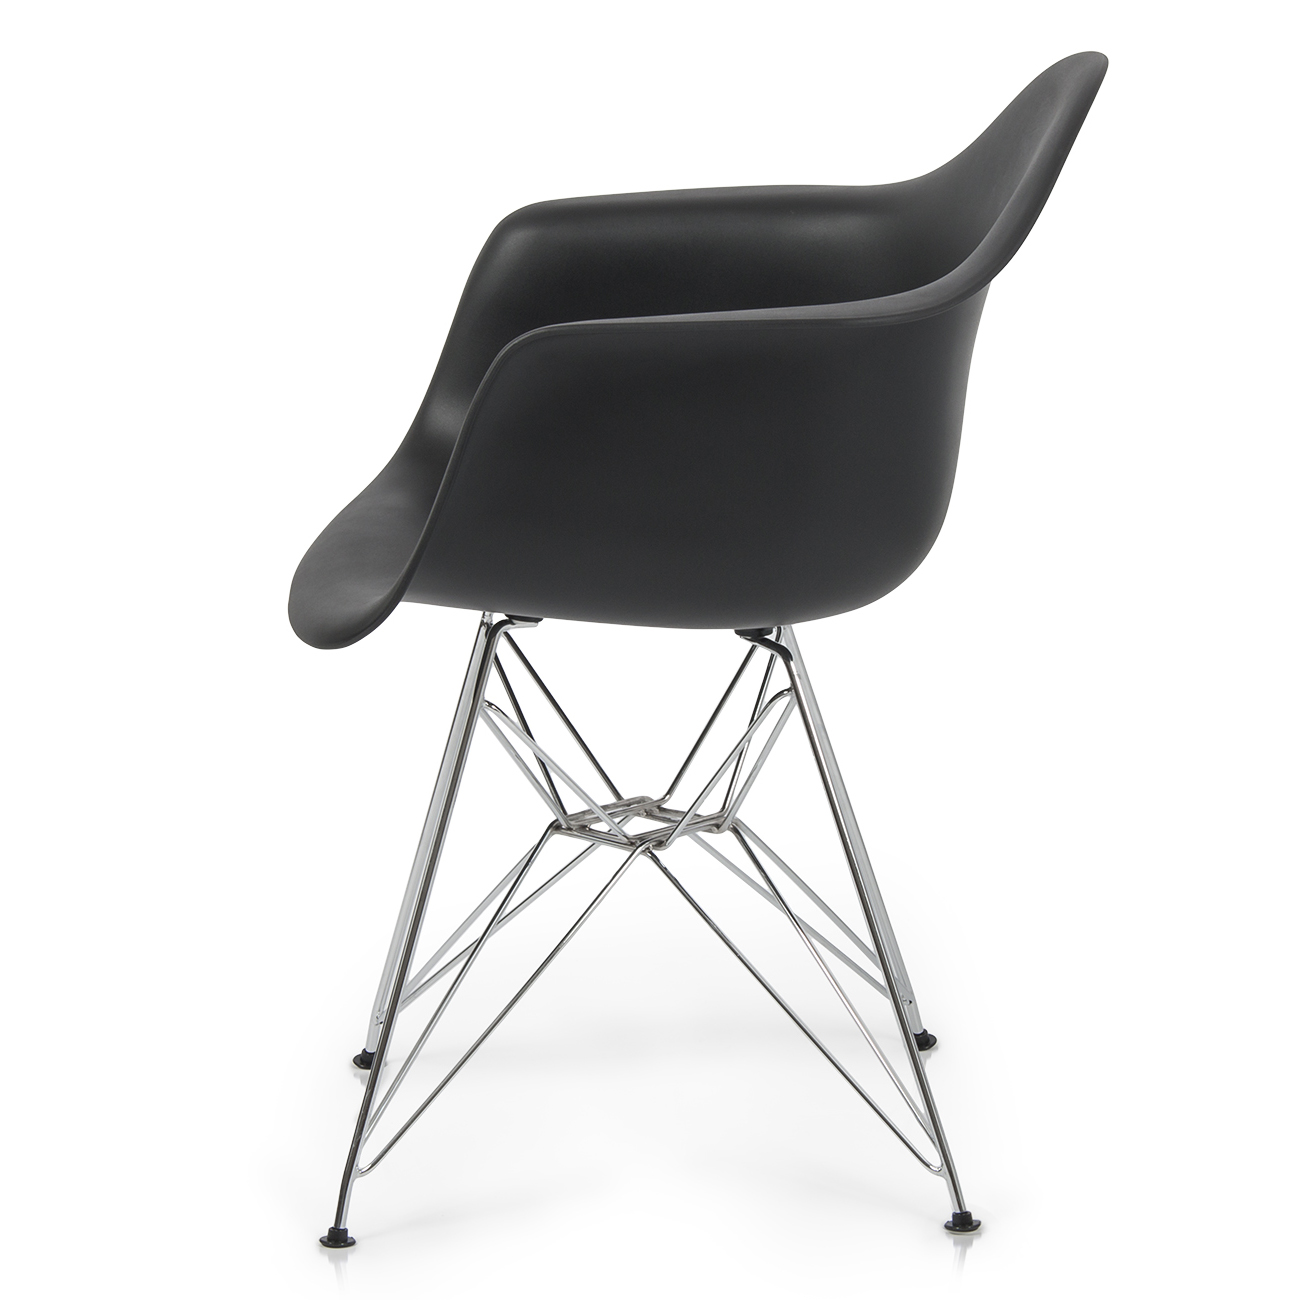 Dining Arm Chairs Black Design: Mid Century Modern Style Black Molded Plastic DAW Dining